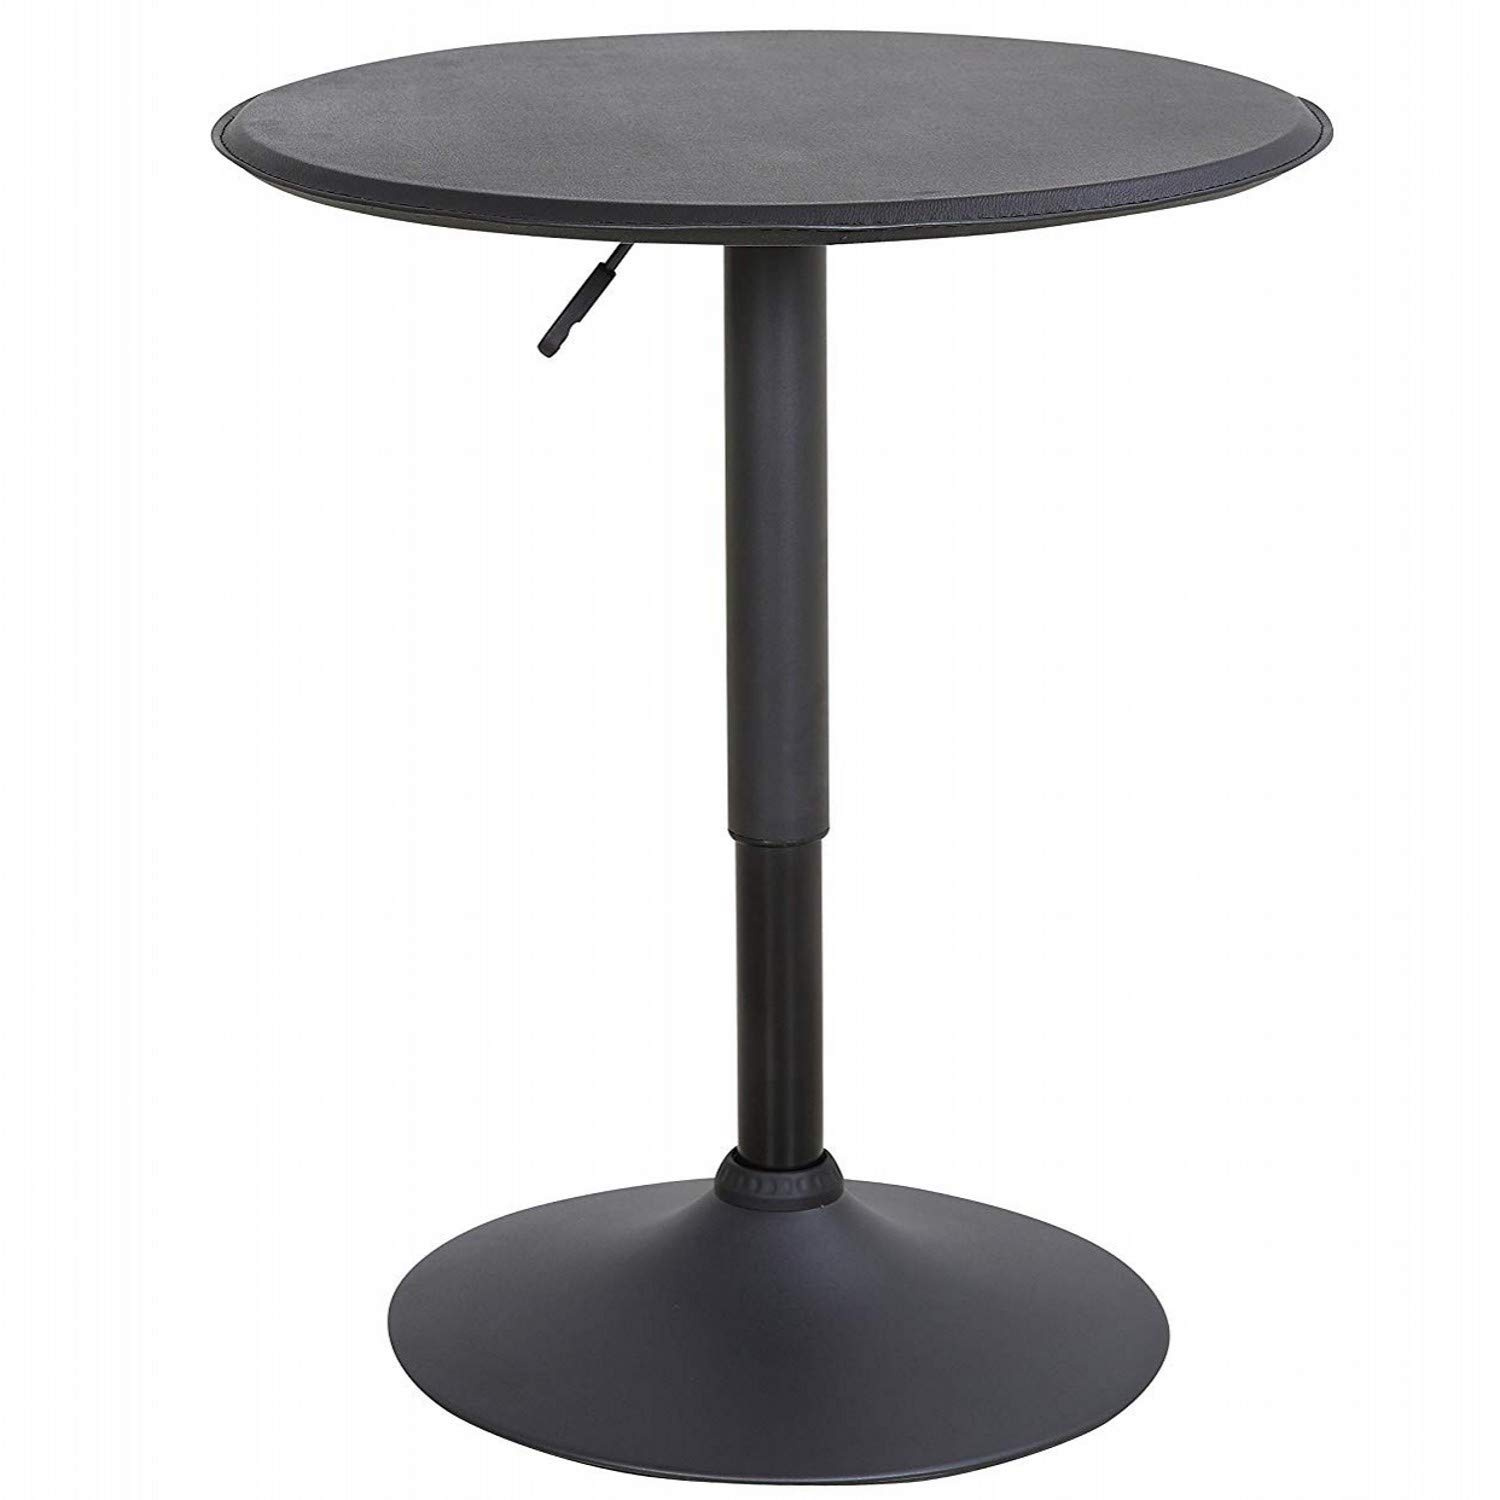 LCH 23.6'' PU Top Bar Table Adjustable Round Dining Kitchen Home Bar Pub Furniture, Black